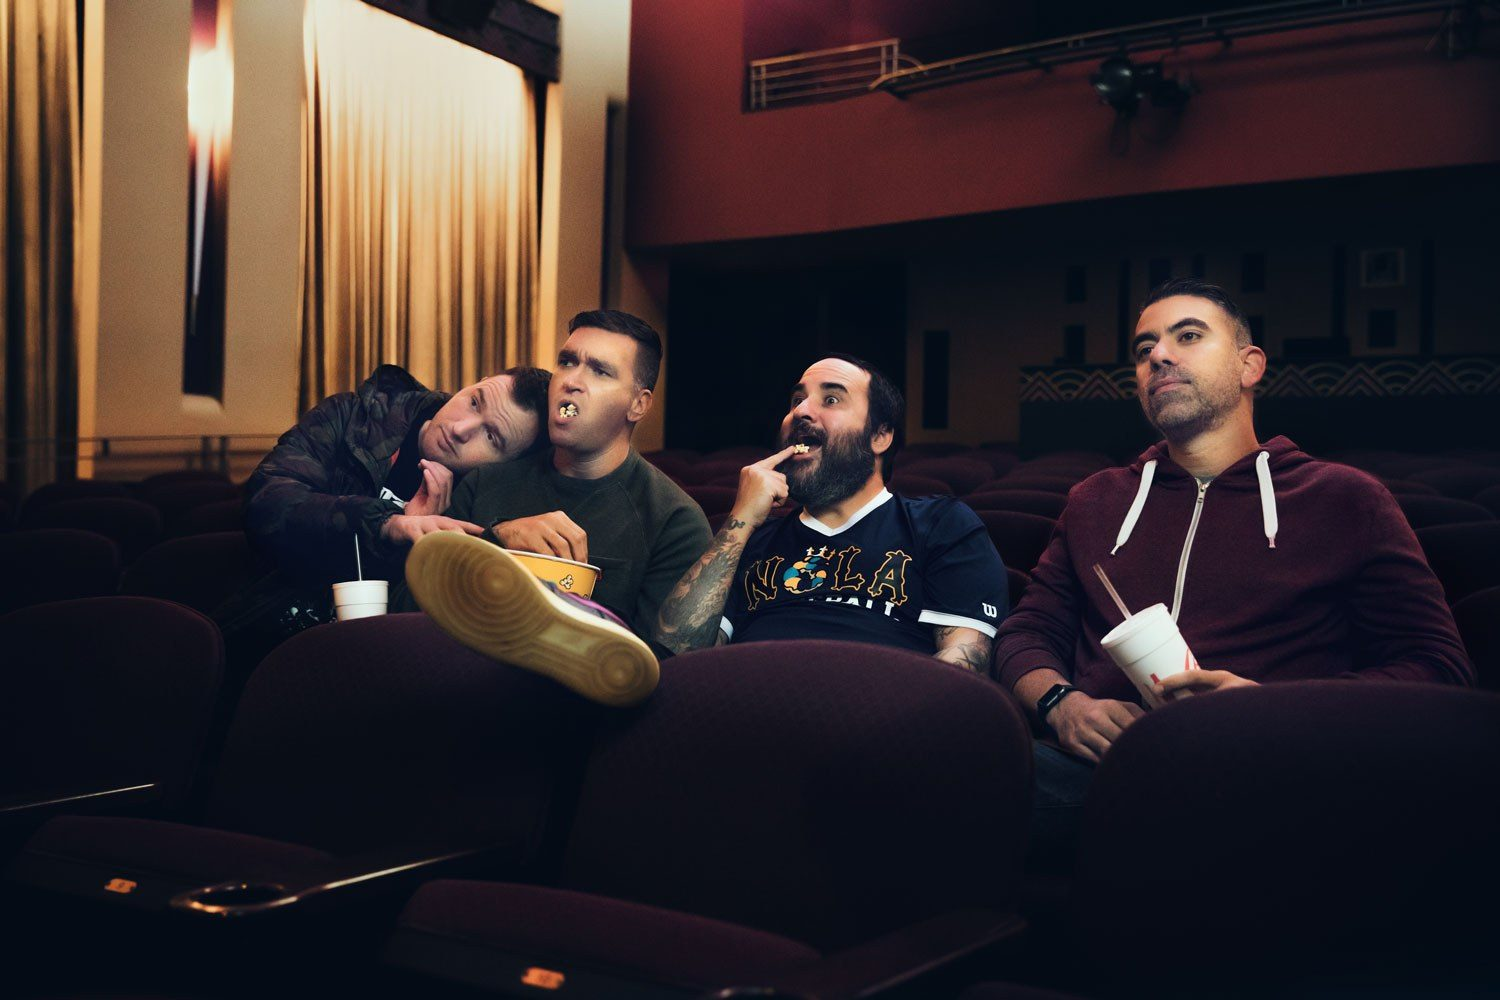 New Found Glory have dropped a video for their cover of Survivor's 'Eye of the Tiger'